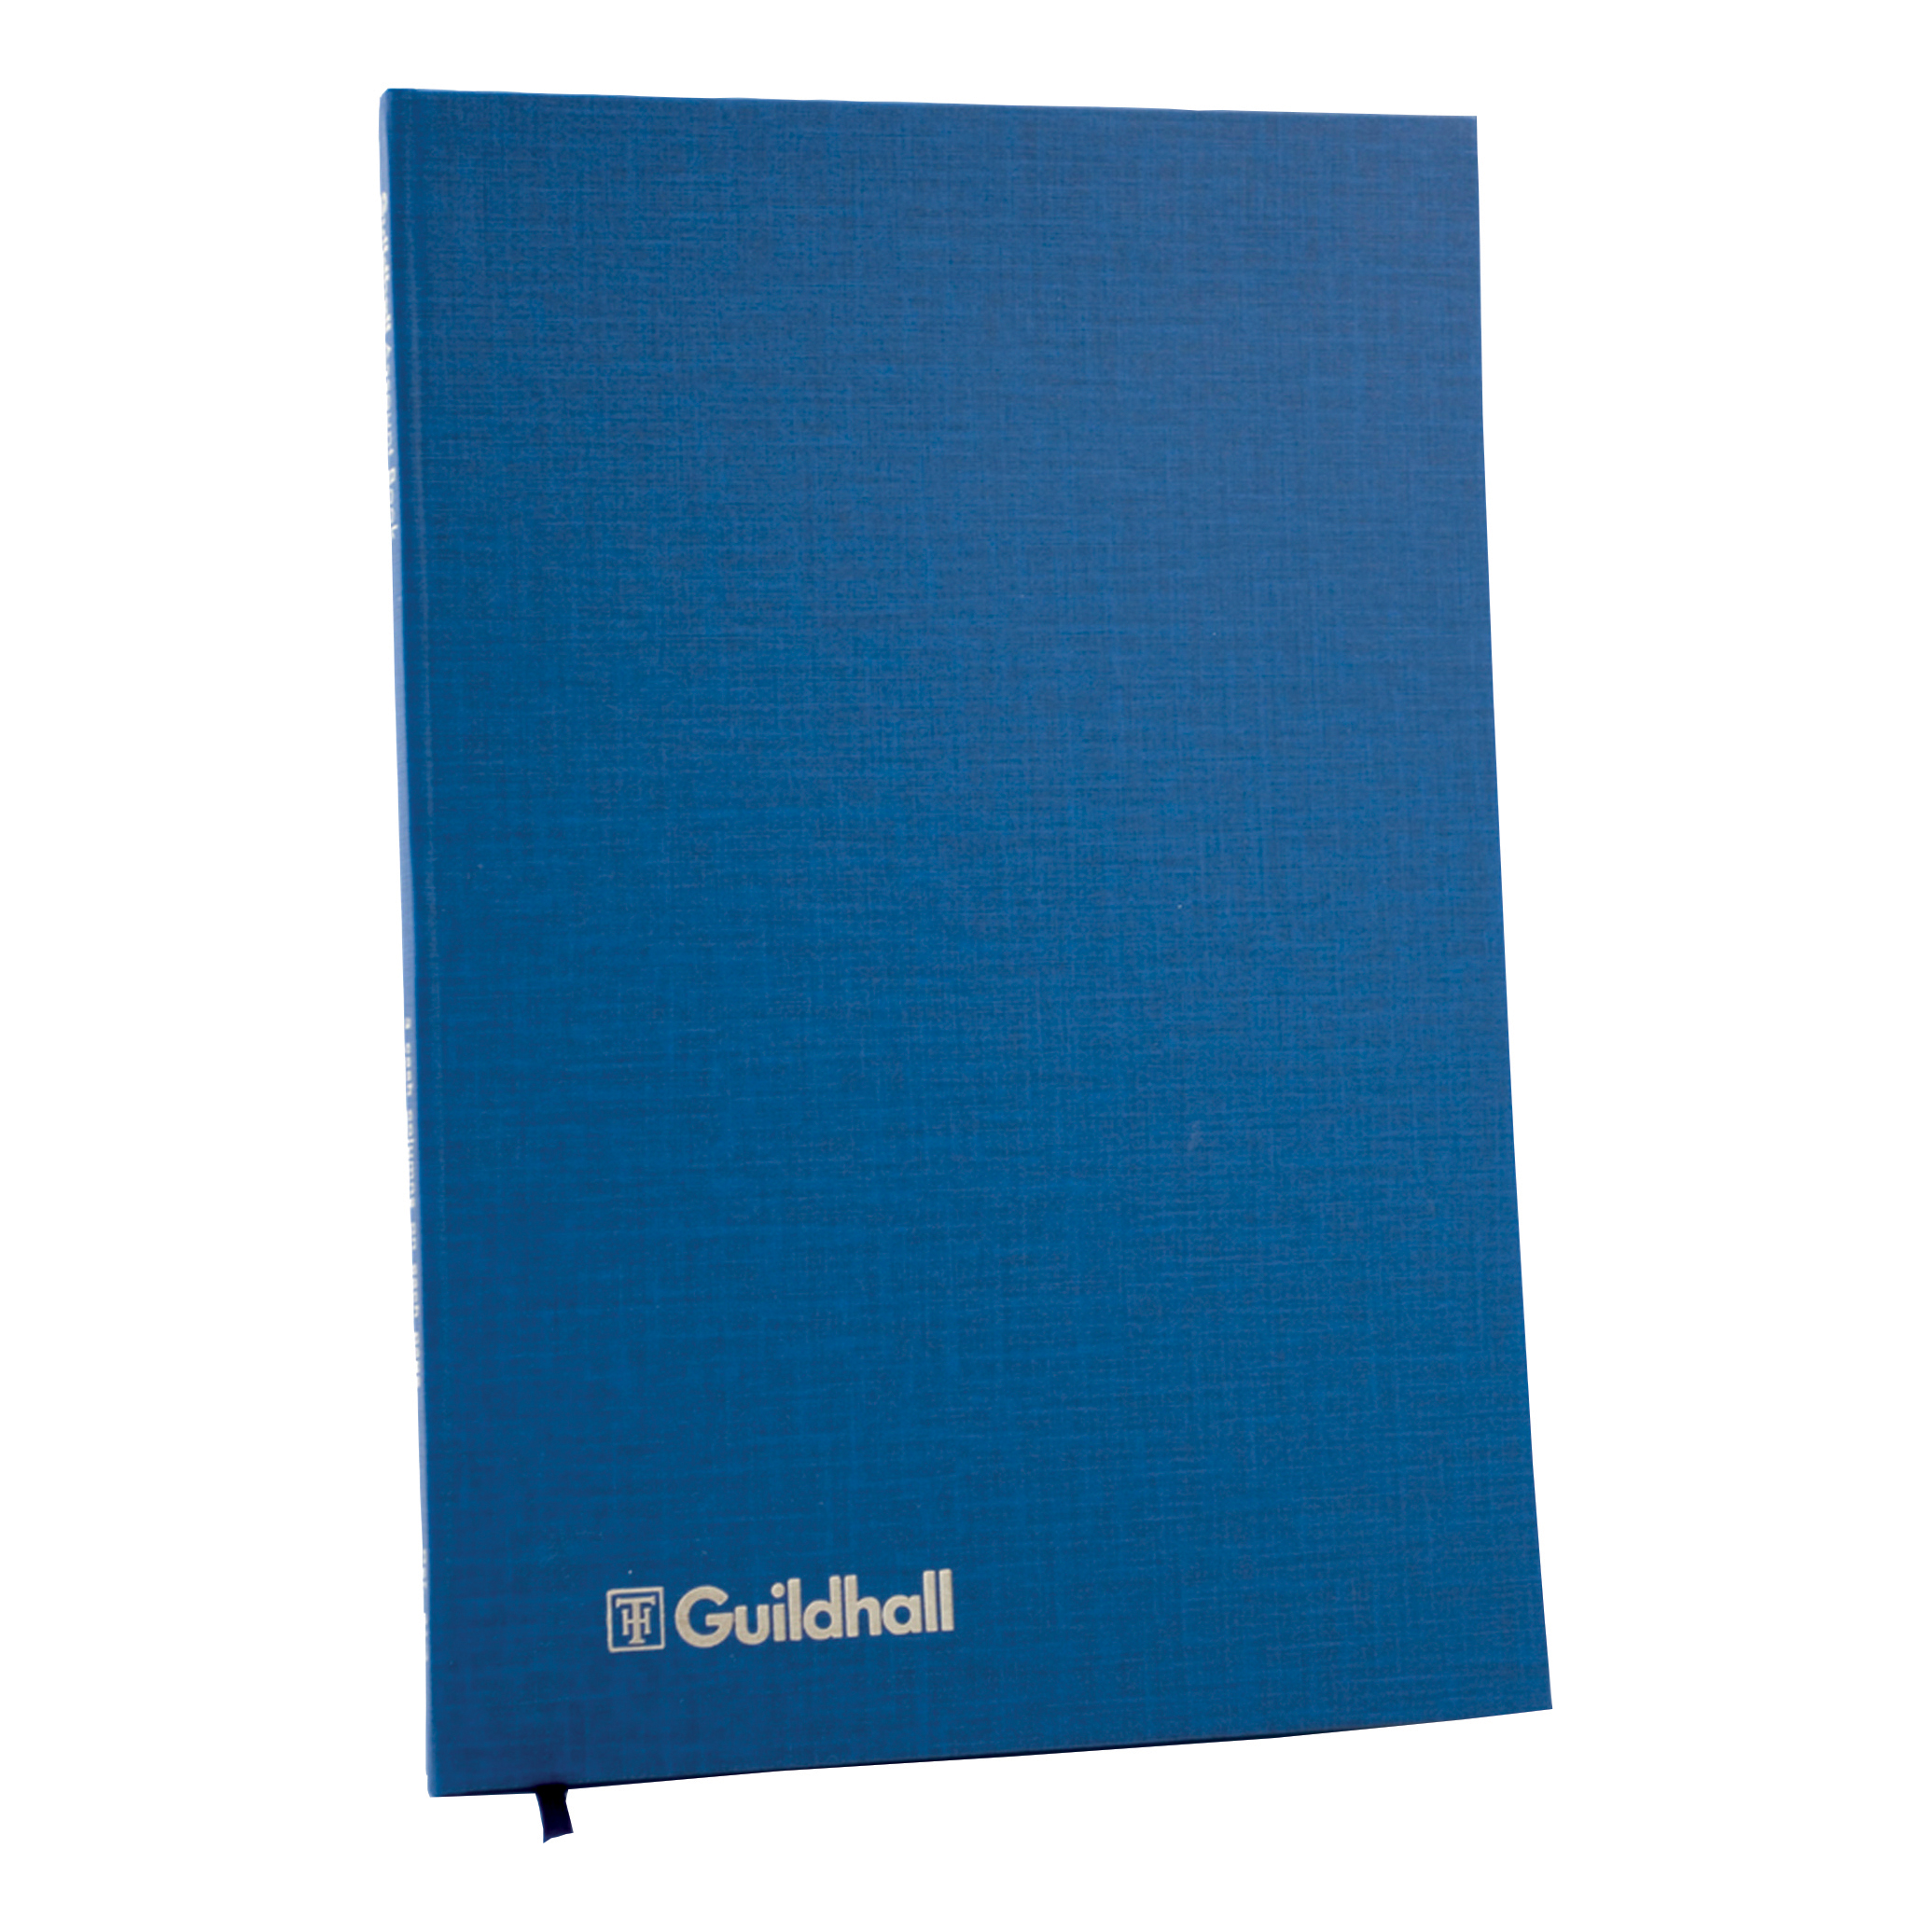 Guildhall Account Book 31 Series 6 Cash Column 80 Pages 298x203mm Ref 31/6Z